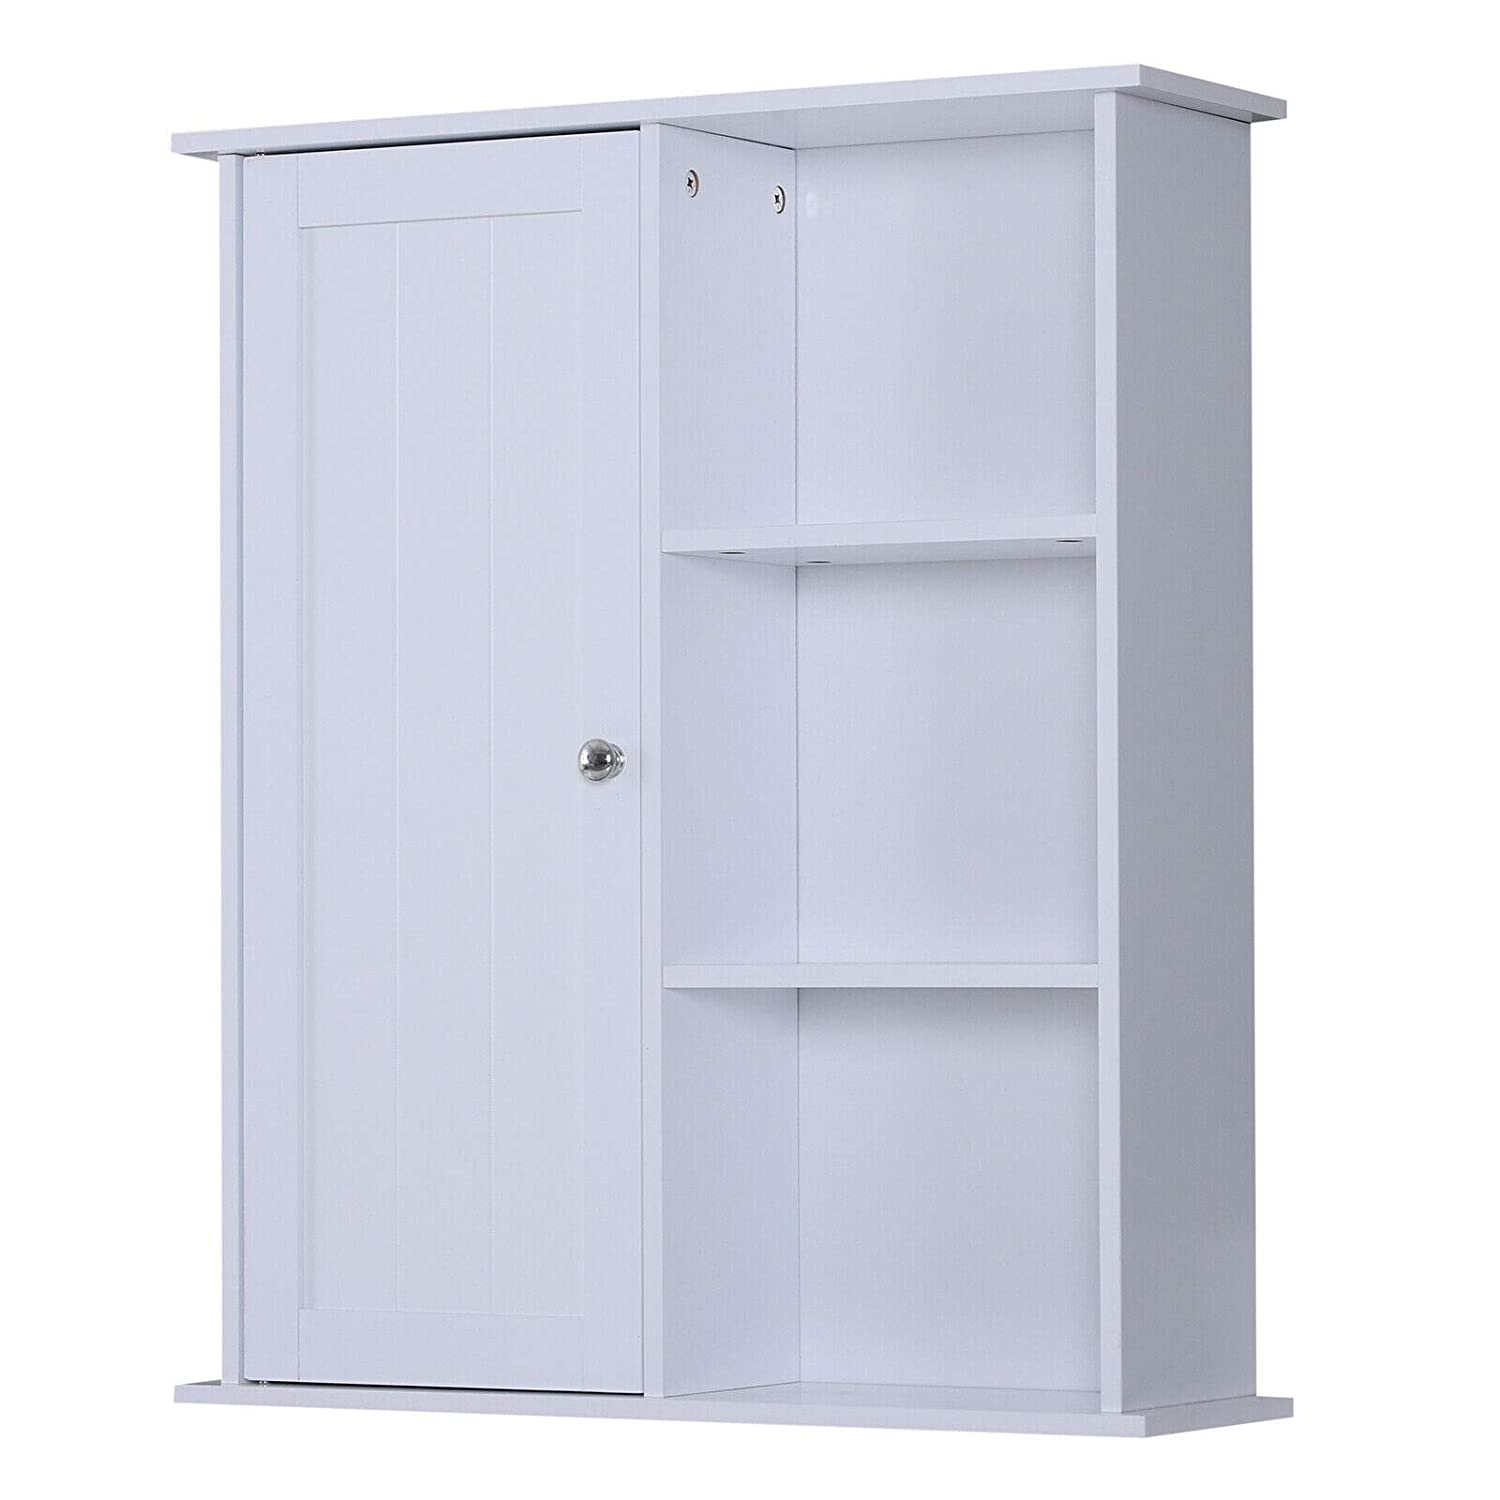 "24"" x 28"" H Wooden Wall Mounted Bathroom Storage Cabinet White w/Door & Shelves"